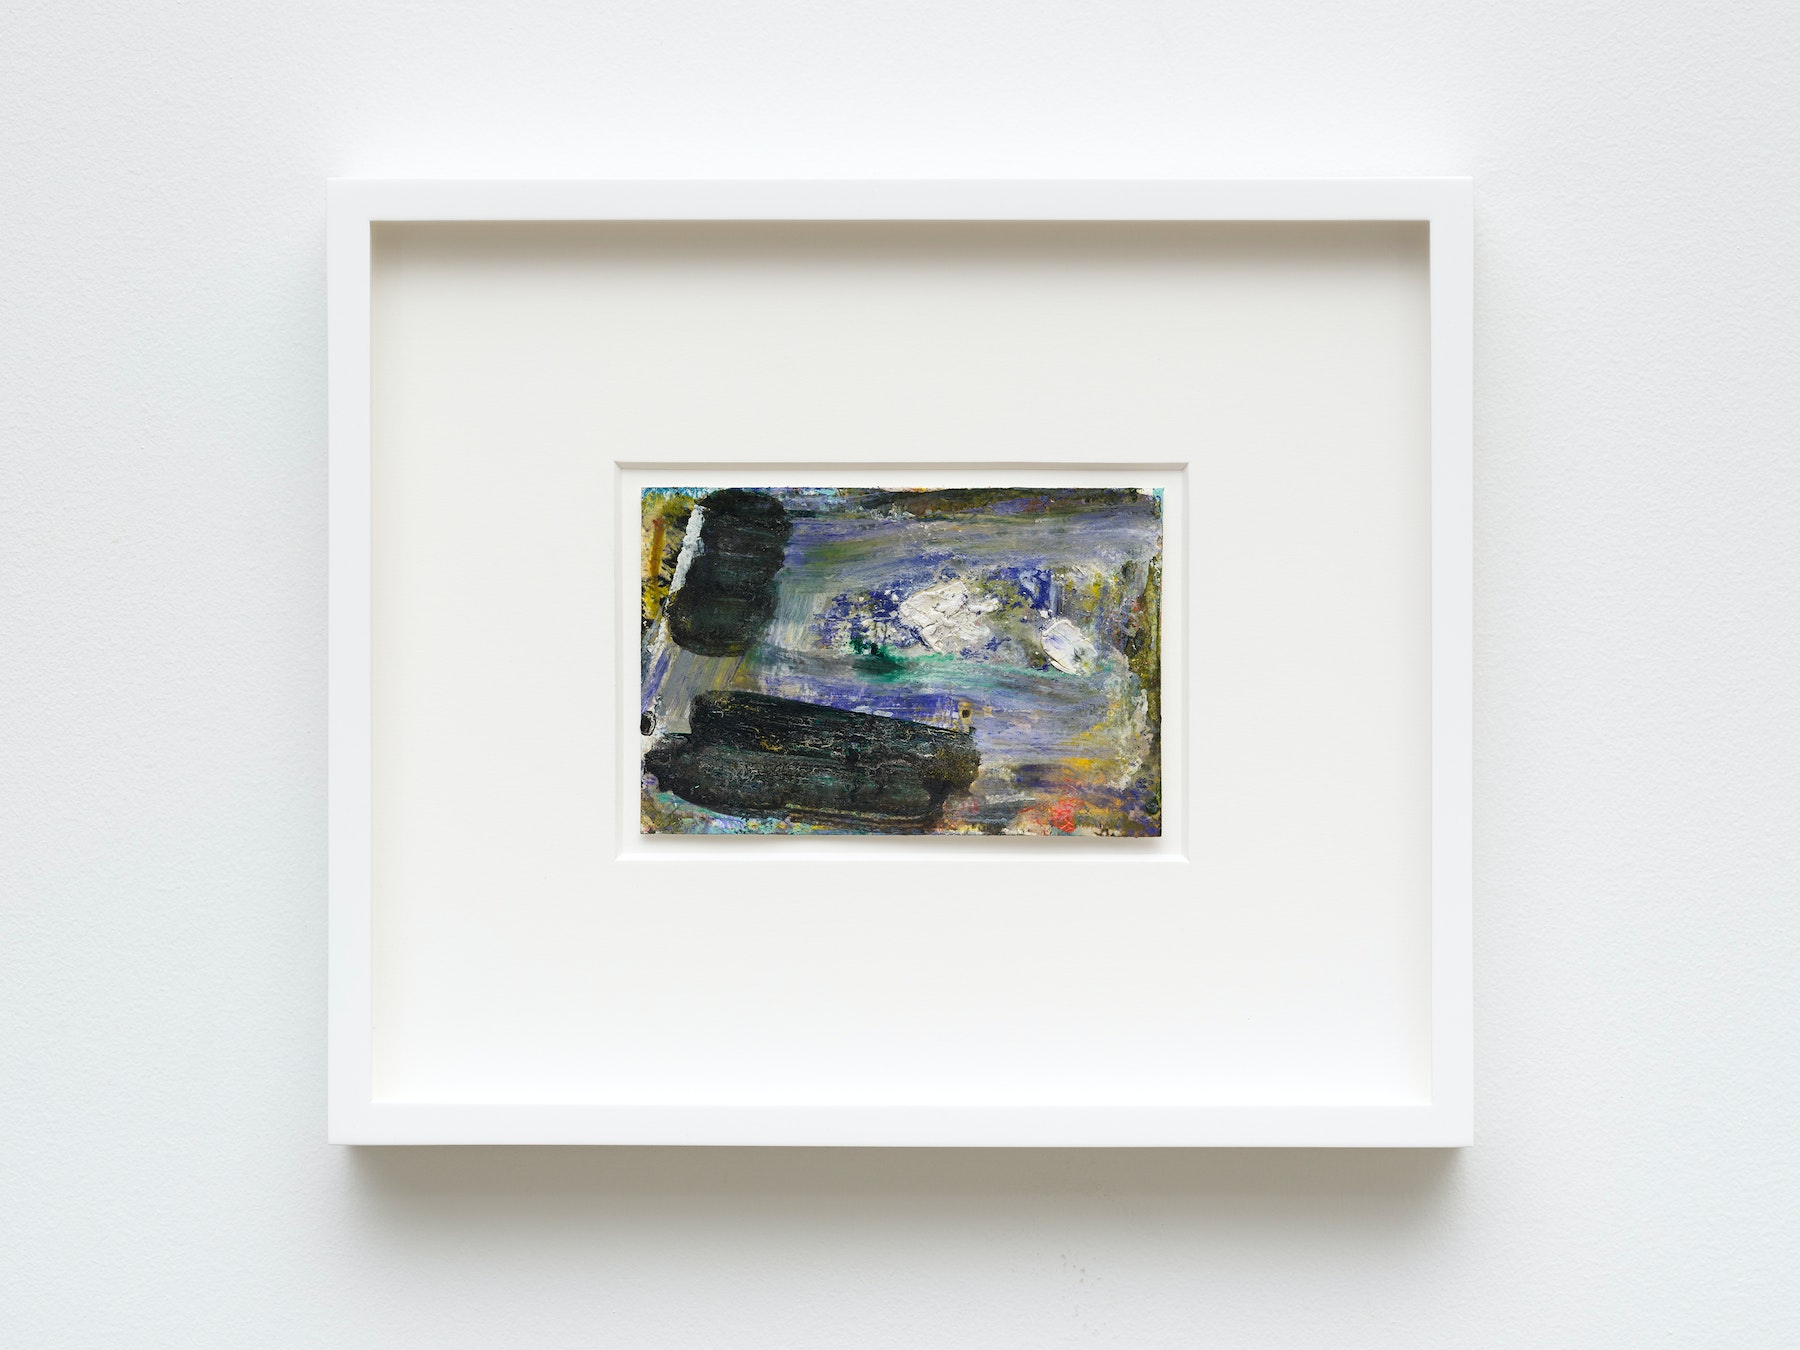 """Louise Fishman """"UNTITLED,"""" 2020 Watercolor and ProWhite on board 4"""" x 6"""" [HxW] (10.16 x 15.24 cm) unframed, 11"""" x 13"""" x 1 ¹⁄₂"""" [HxWxD] (27.94 x 33.02 x 3.81 cm) framed Inventory #FIS160 Courtesy of the artist and Vielmetter Los Angeles Photo credit: Jeff Mclane"""